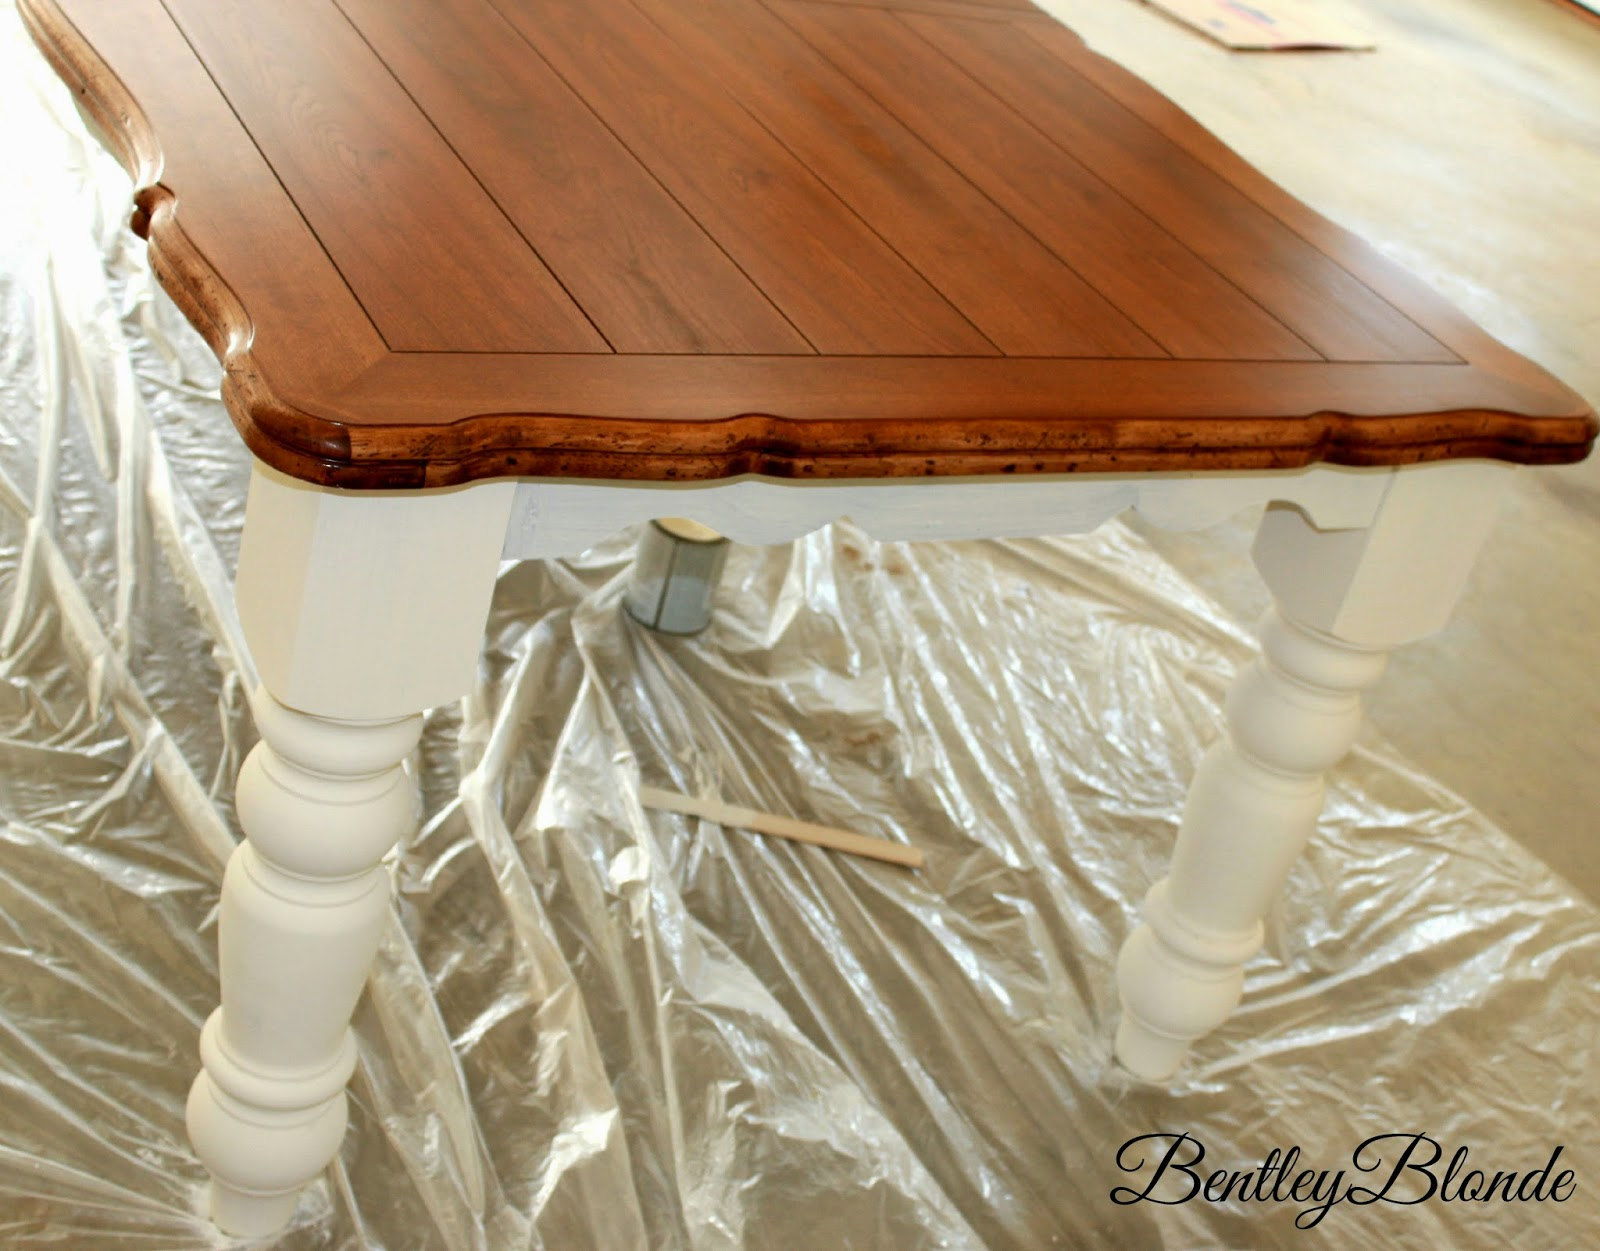 BentleyBlonde  DIY Farmhouse Table   Dining Set Makeover with Annie Sloan  Chalk Paint. BentleyBlonde  DIY Farmhouse Table   Dining Set Makeover with